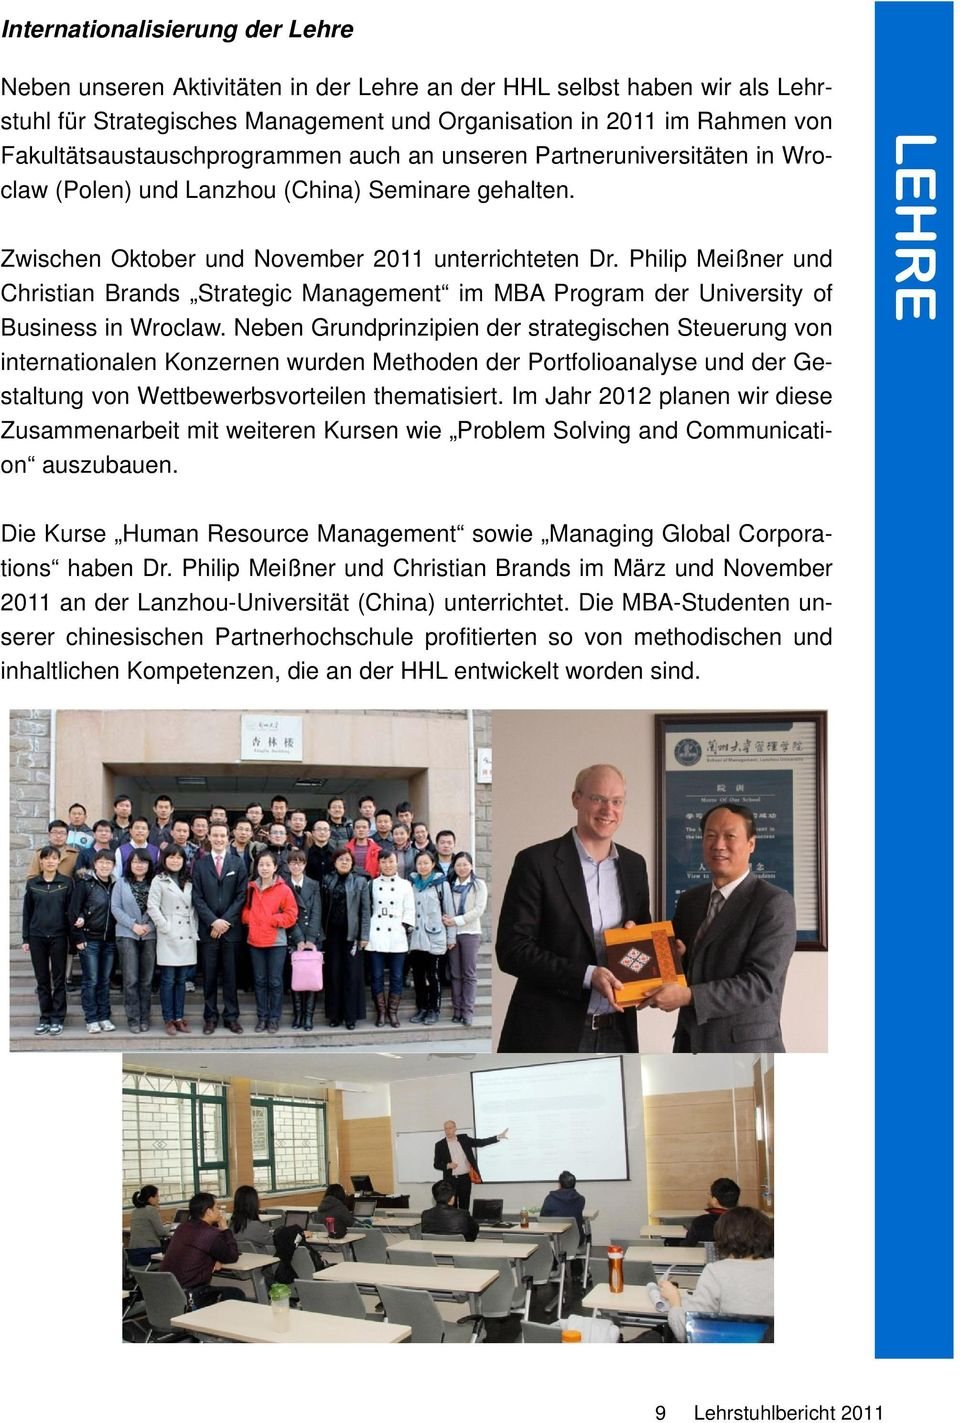 Philip Meißner und Christian Brands Strategic Management im MBA Program der University of Business in Wroclaw.